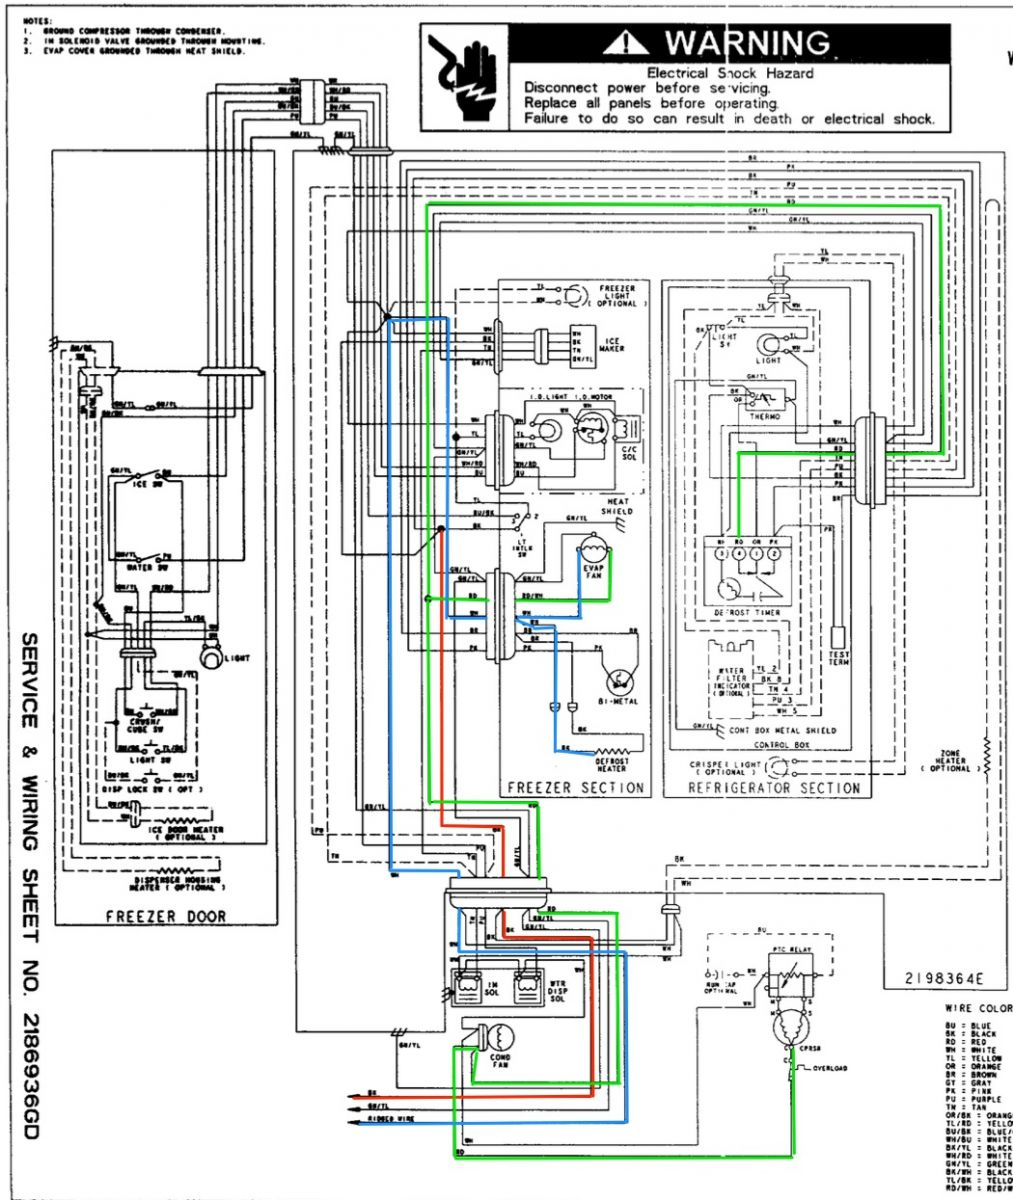 gallery_4_4_346879 whirlpool ed25rfxfw01 refrigerator wiring diagram the refrigerator wiring diagram at bayanpartner.co